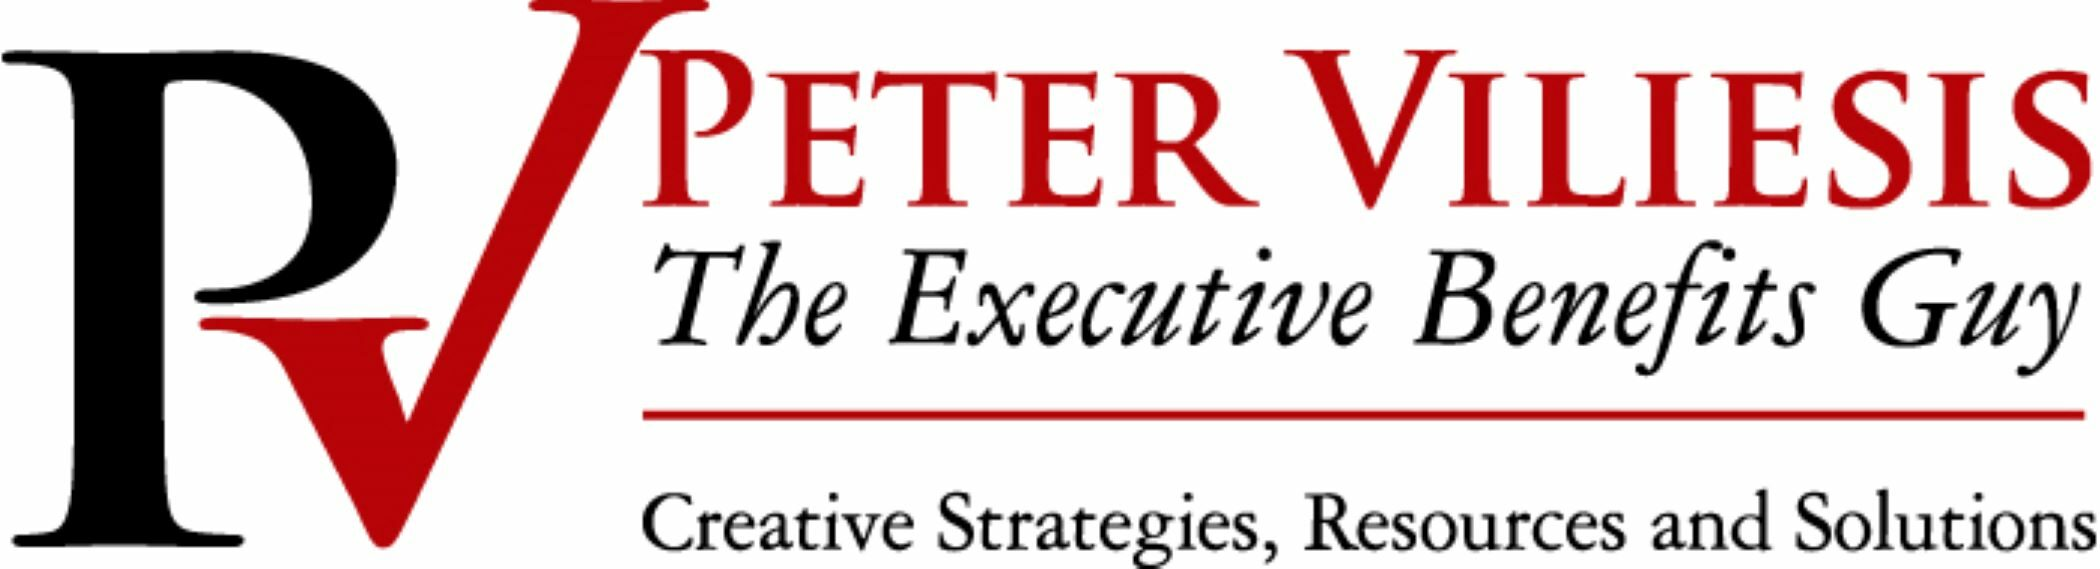 Your Partner for Executive Benefits